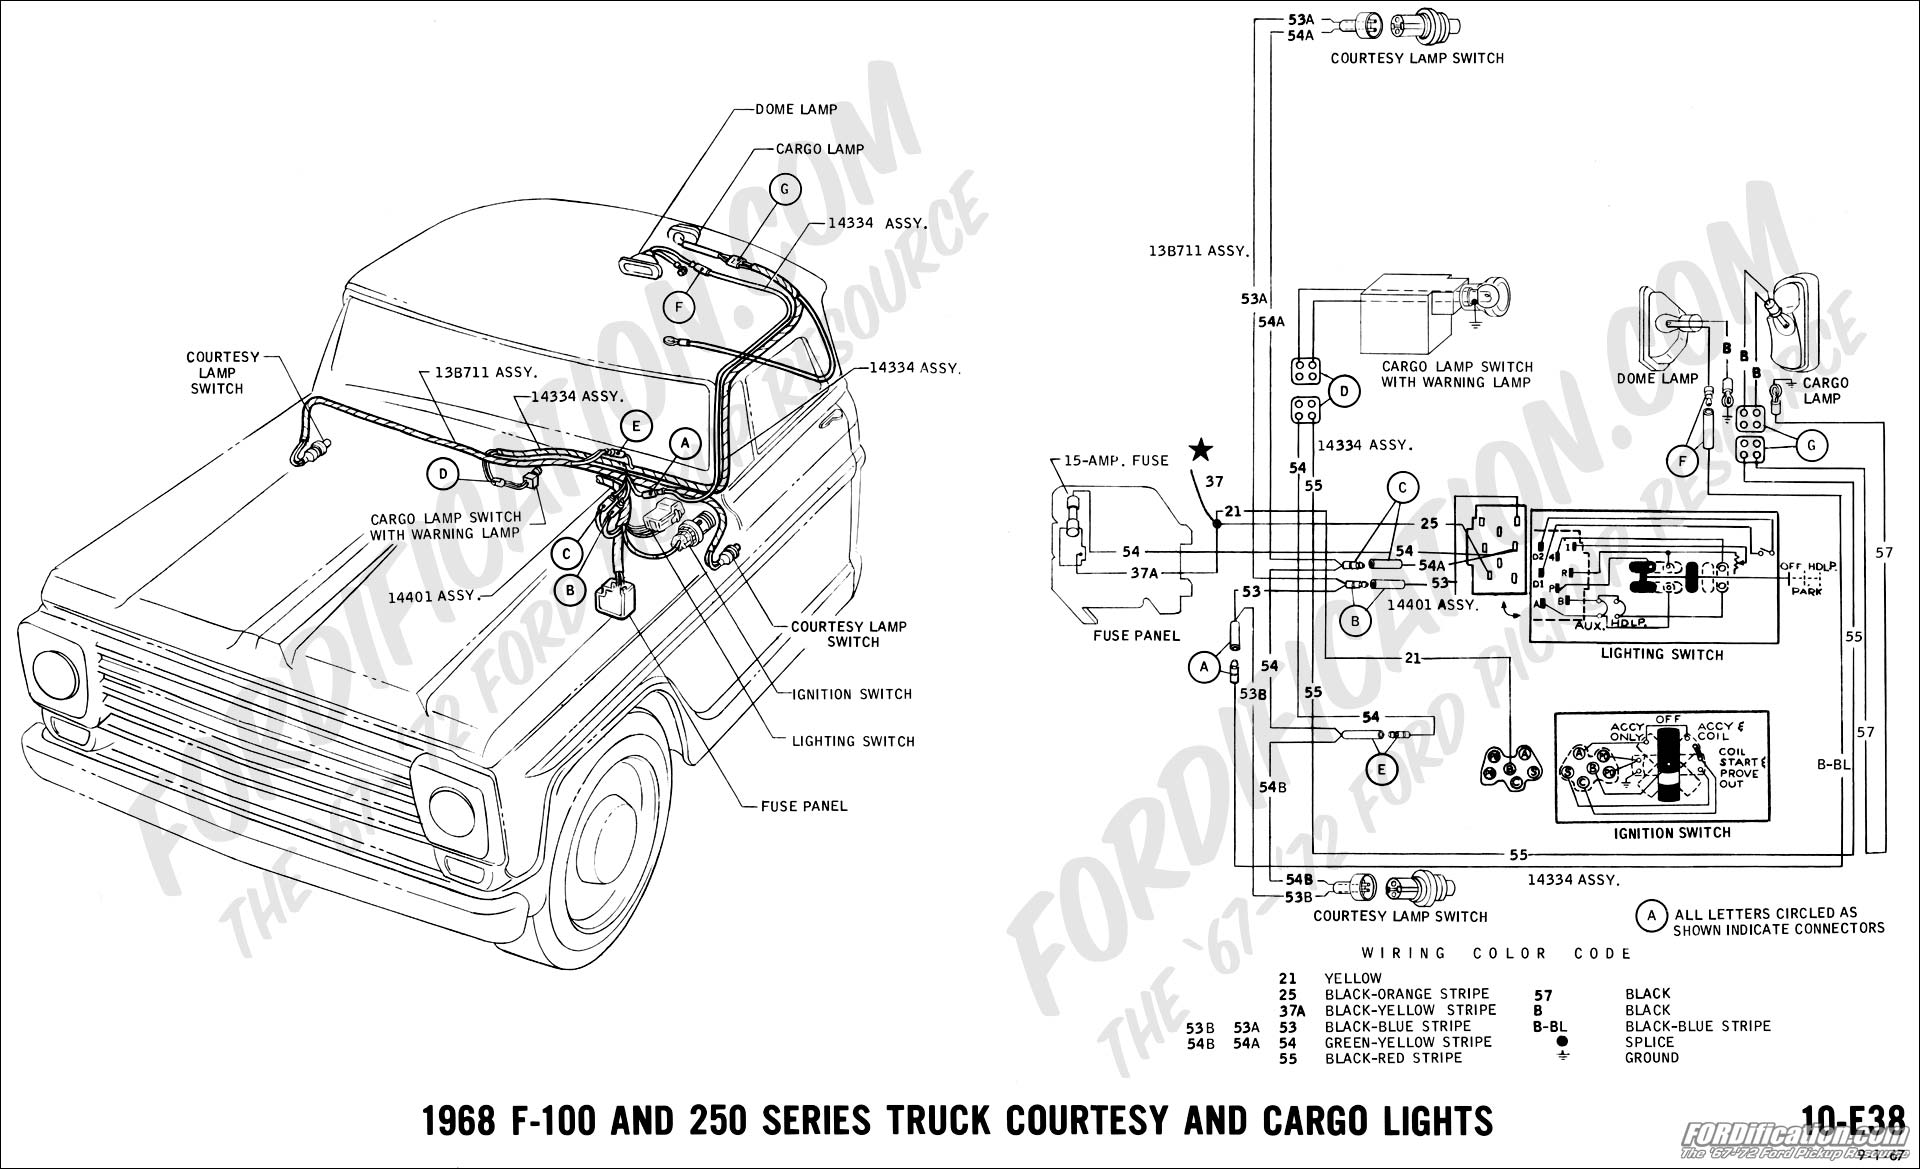 hight resolution of 1968 f100 wiring diagram wiring diagram expert 68 thunderbird ford vacuum routing diagrams free download wiring